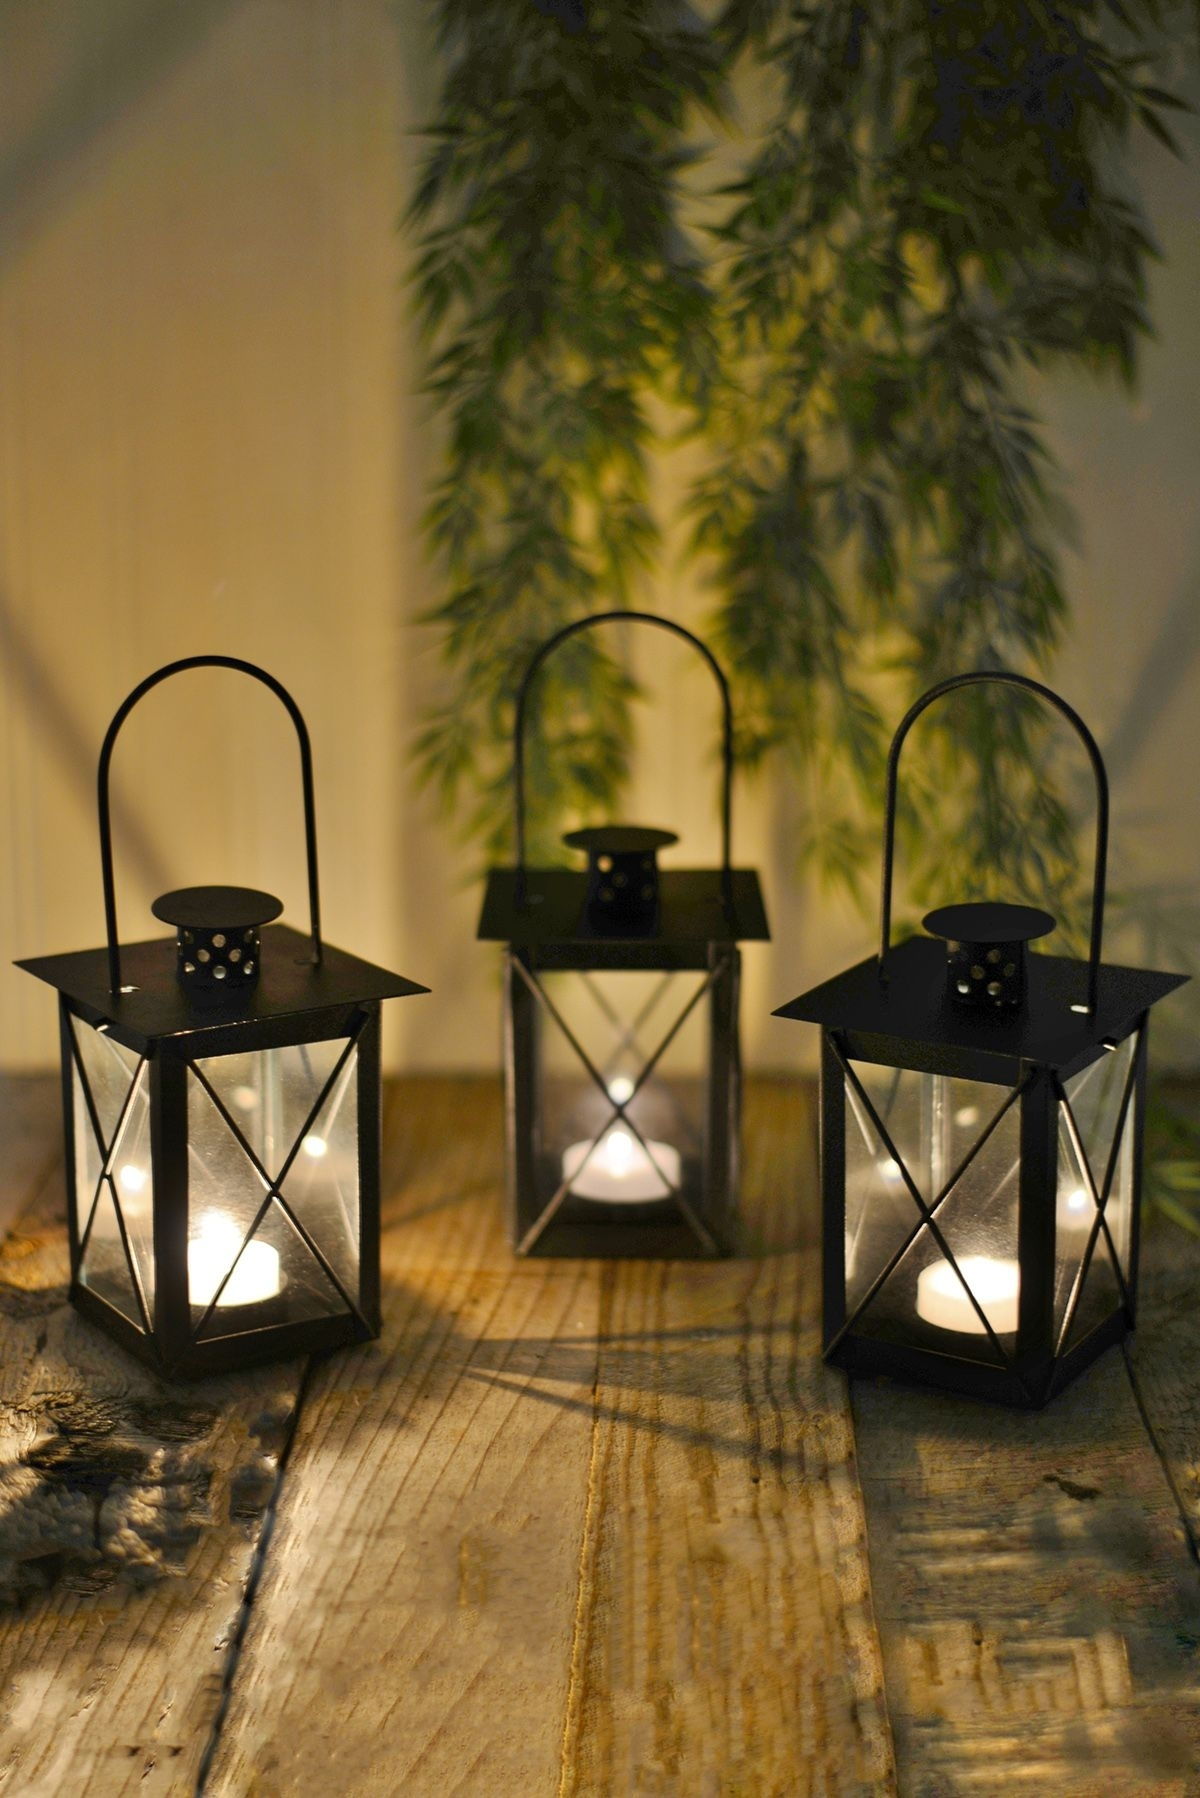 Inspiration about 6 Black Metal & Glass Tealight Candle Lanterns 5 1/2"